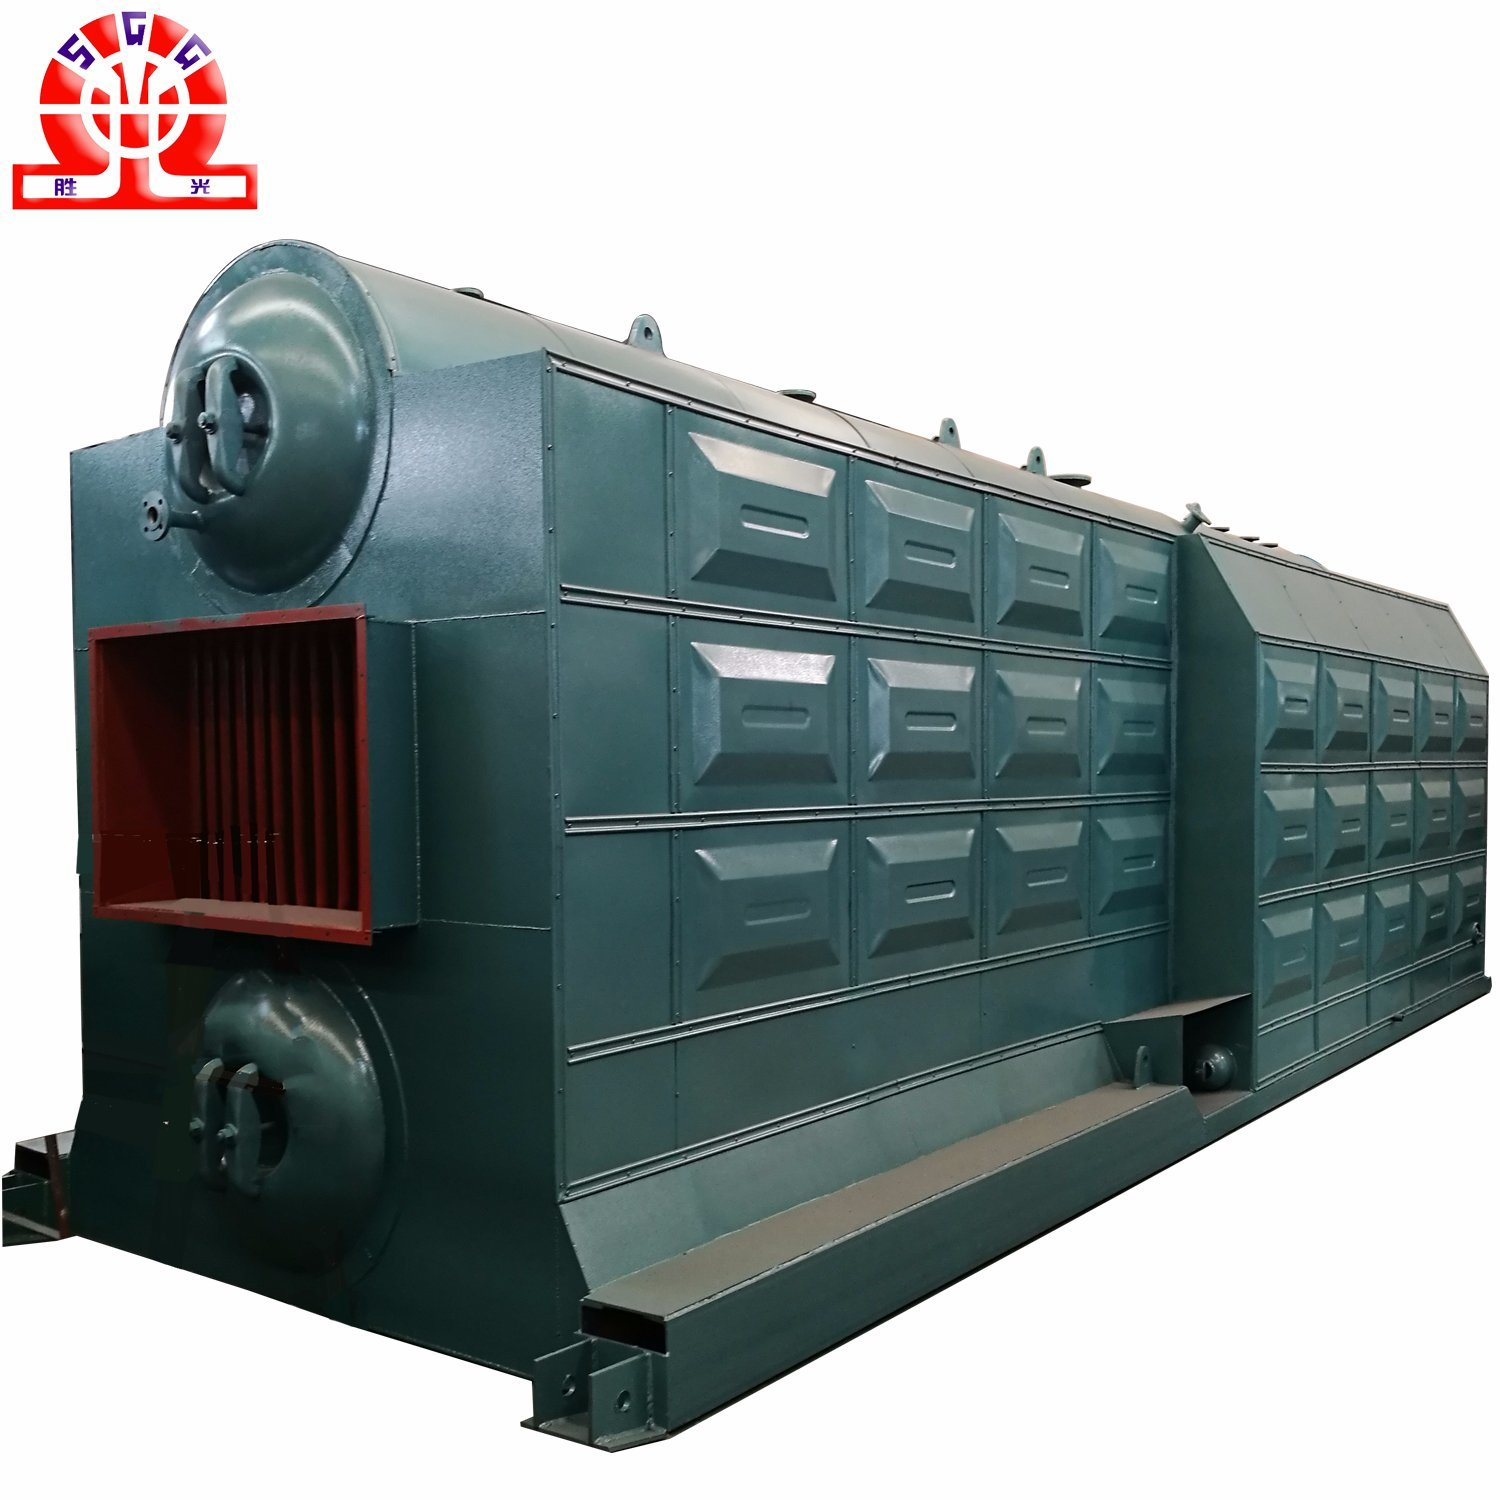 Large Capacity Coal Fired Water Tube Steam Boiler